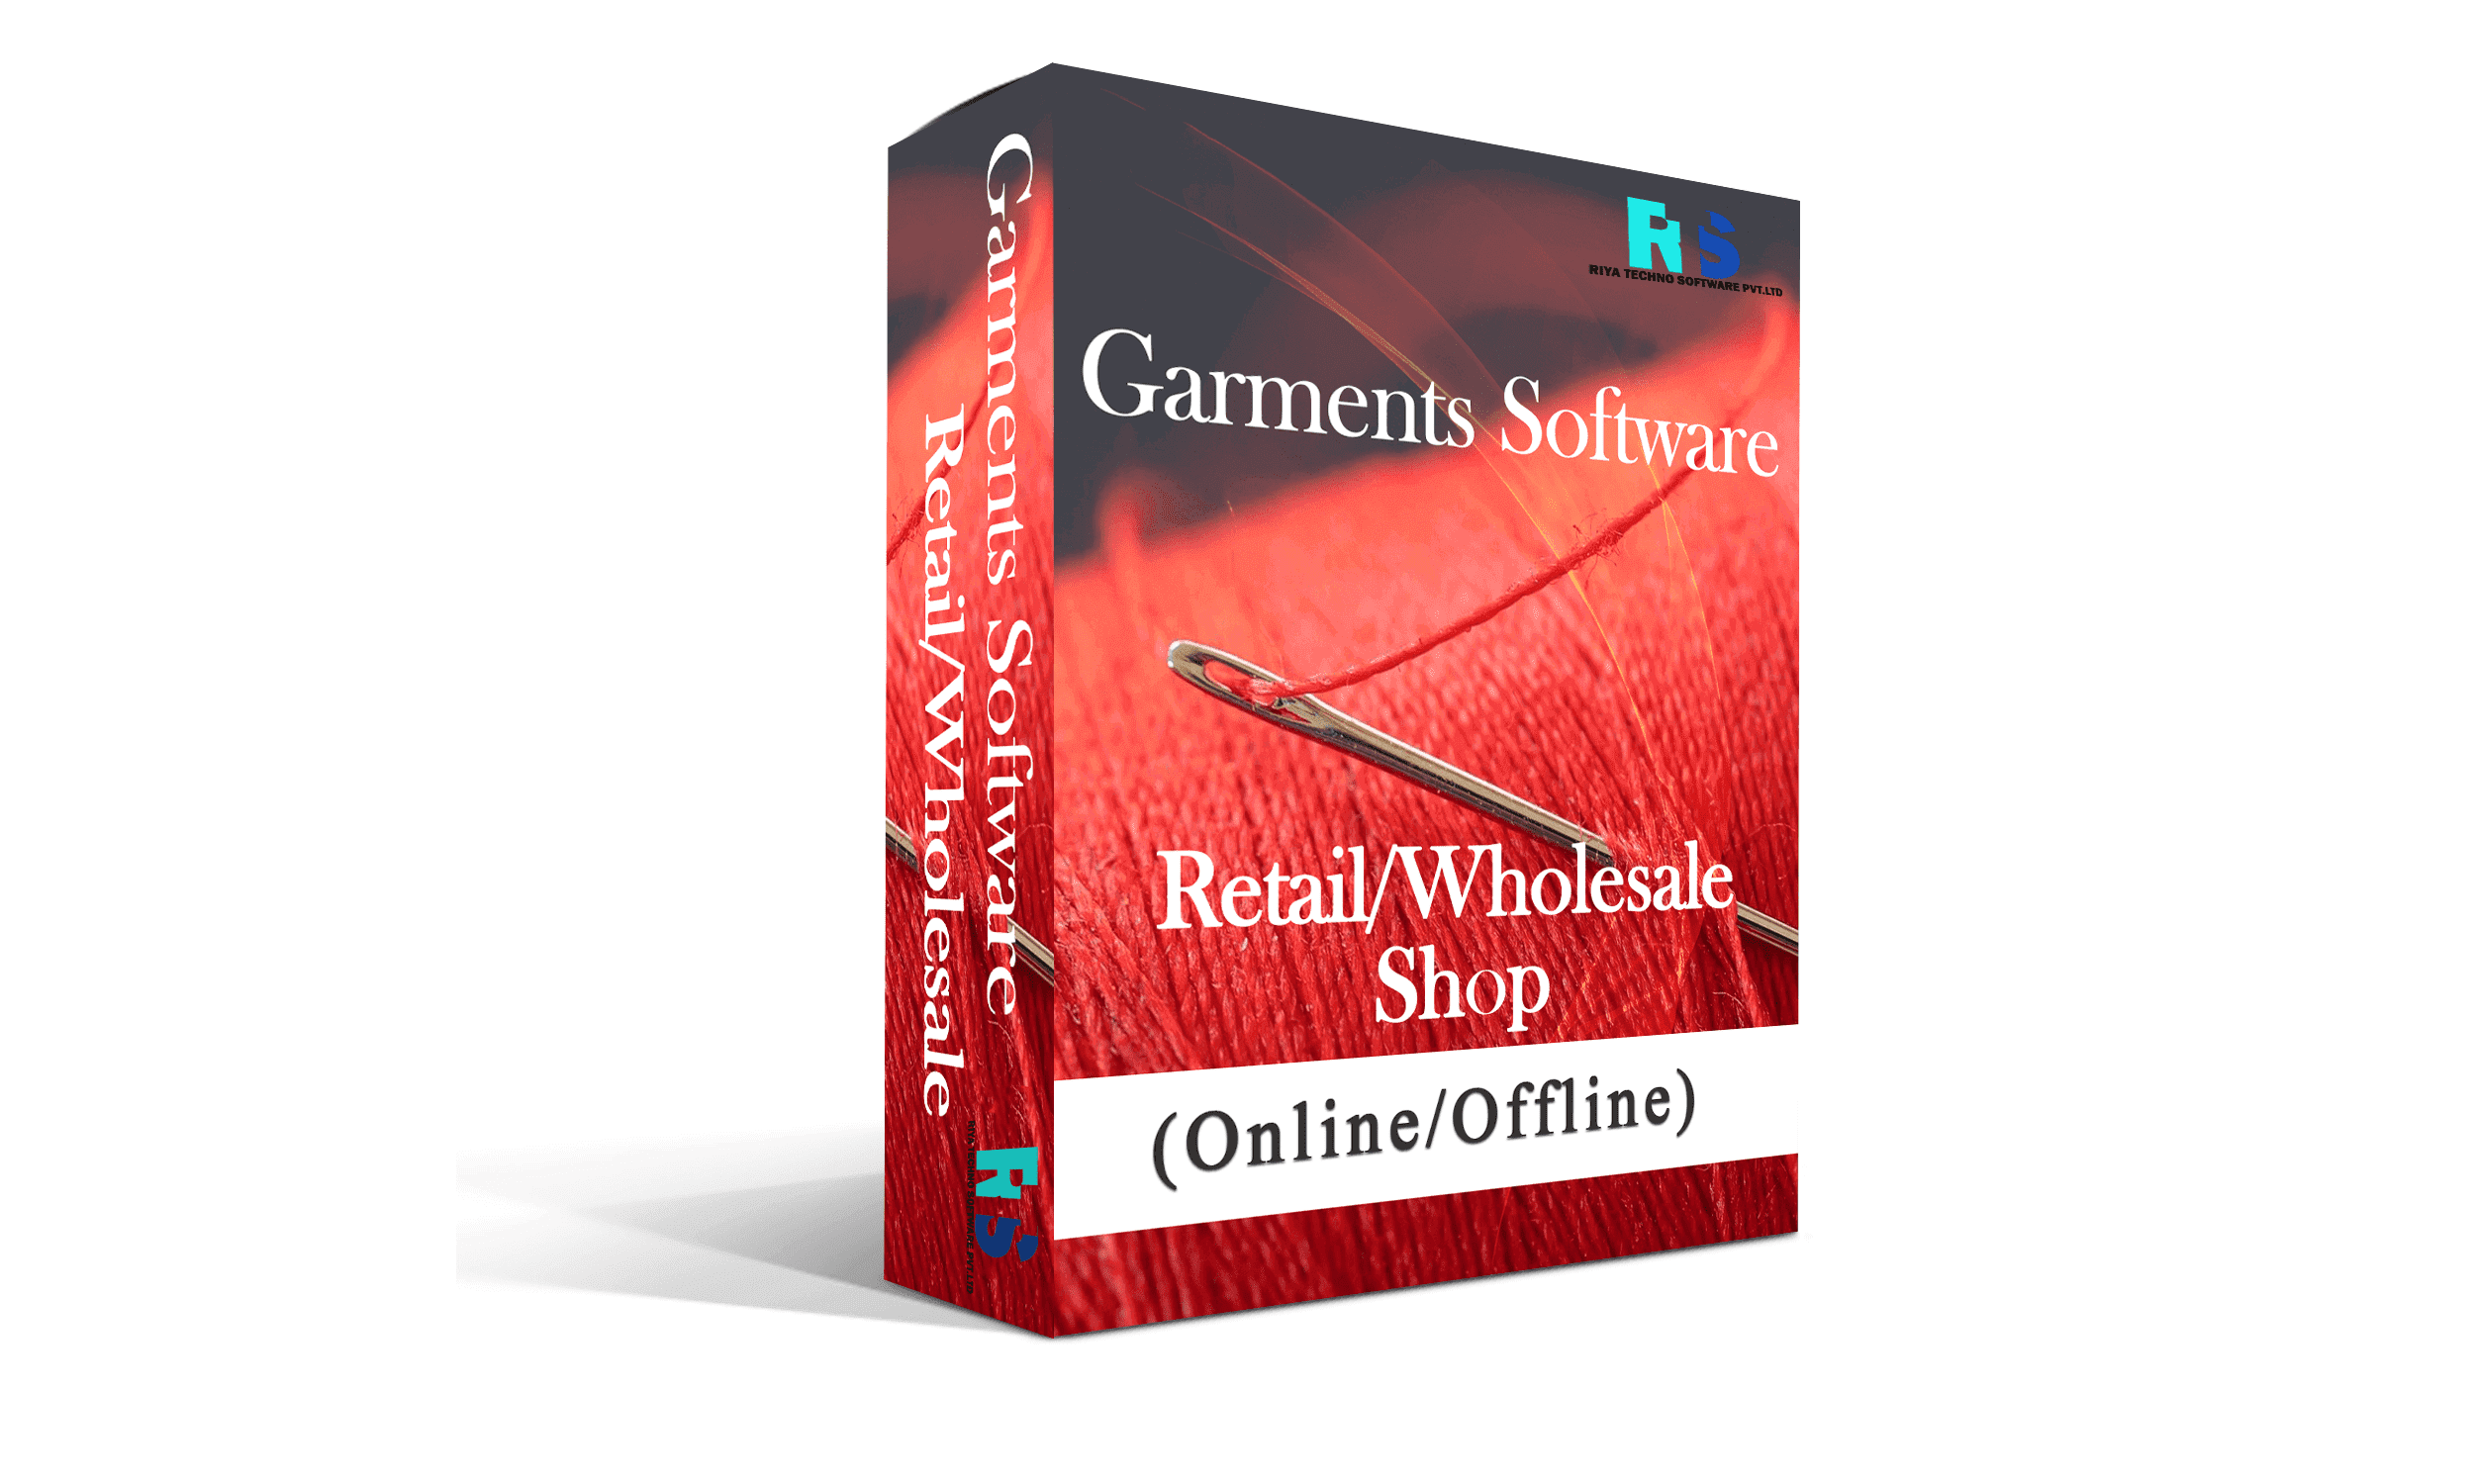 garments software